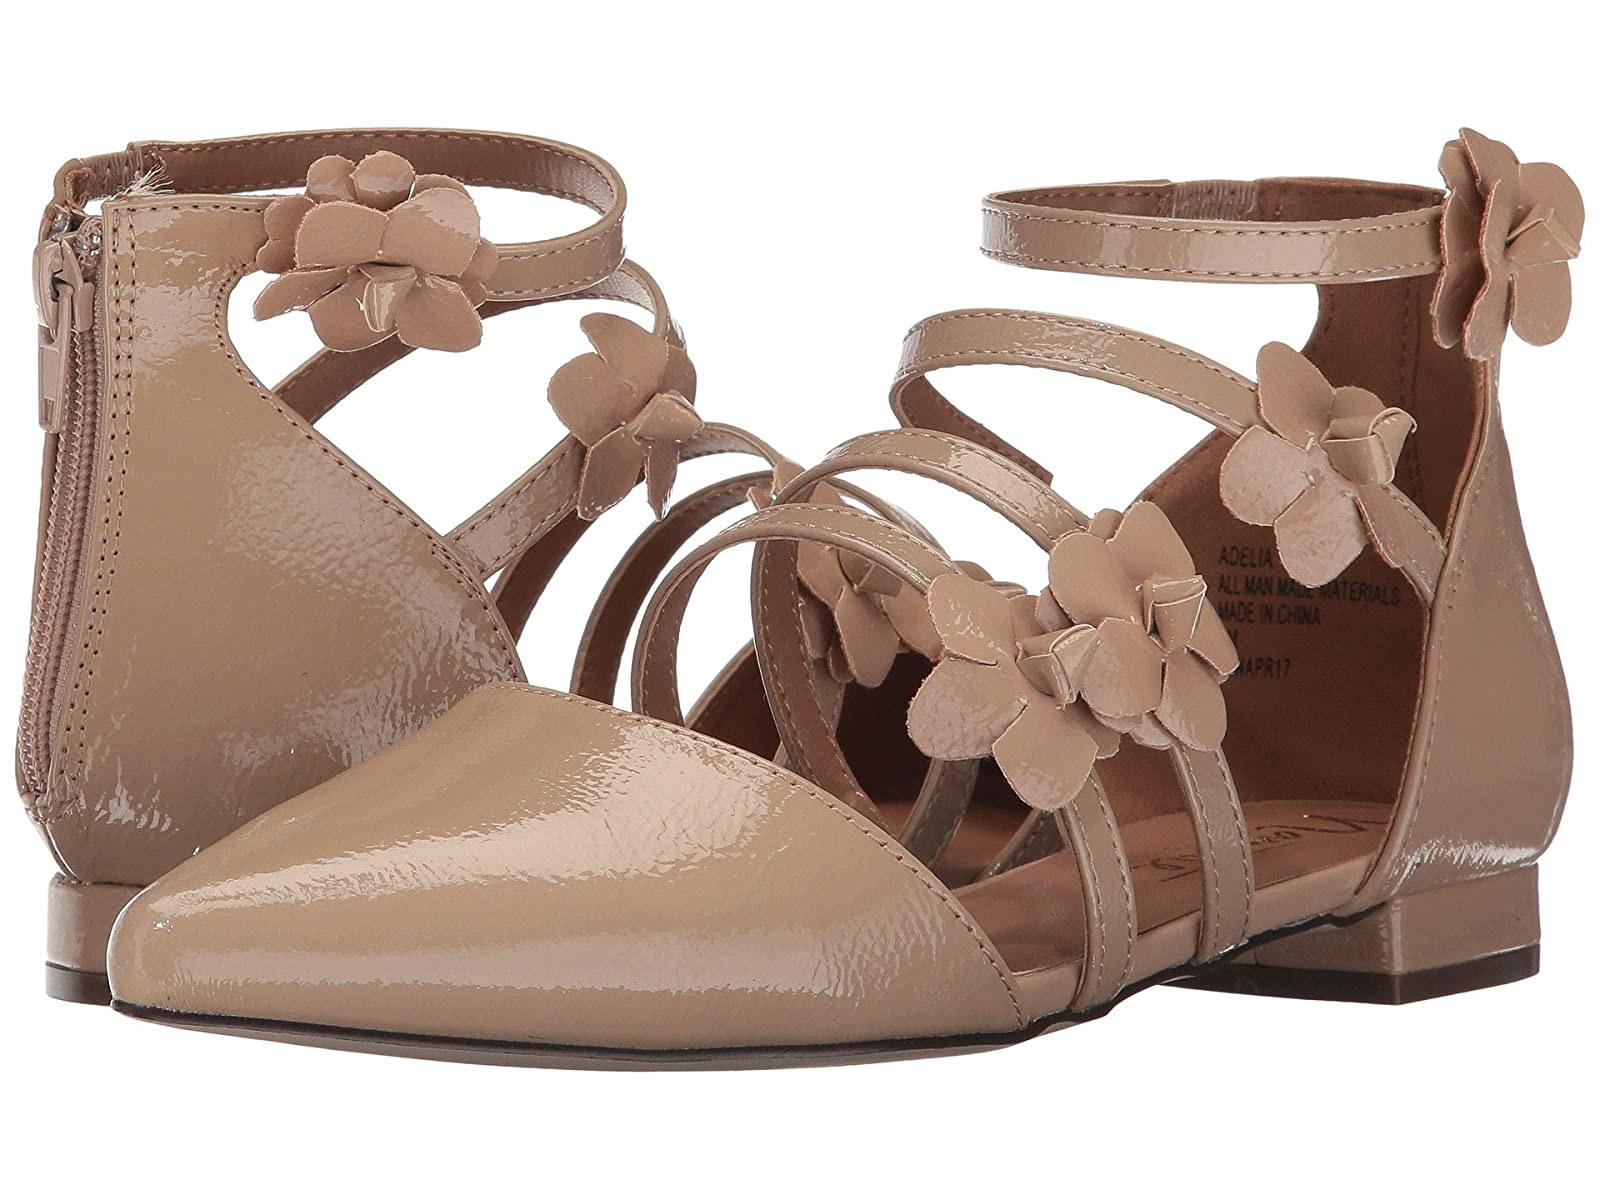 Nanette nanette lepore AdeliaCheap and distinctive eye-catching shoes